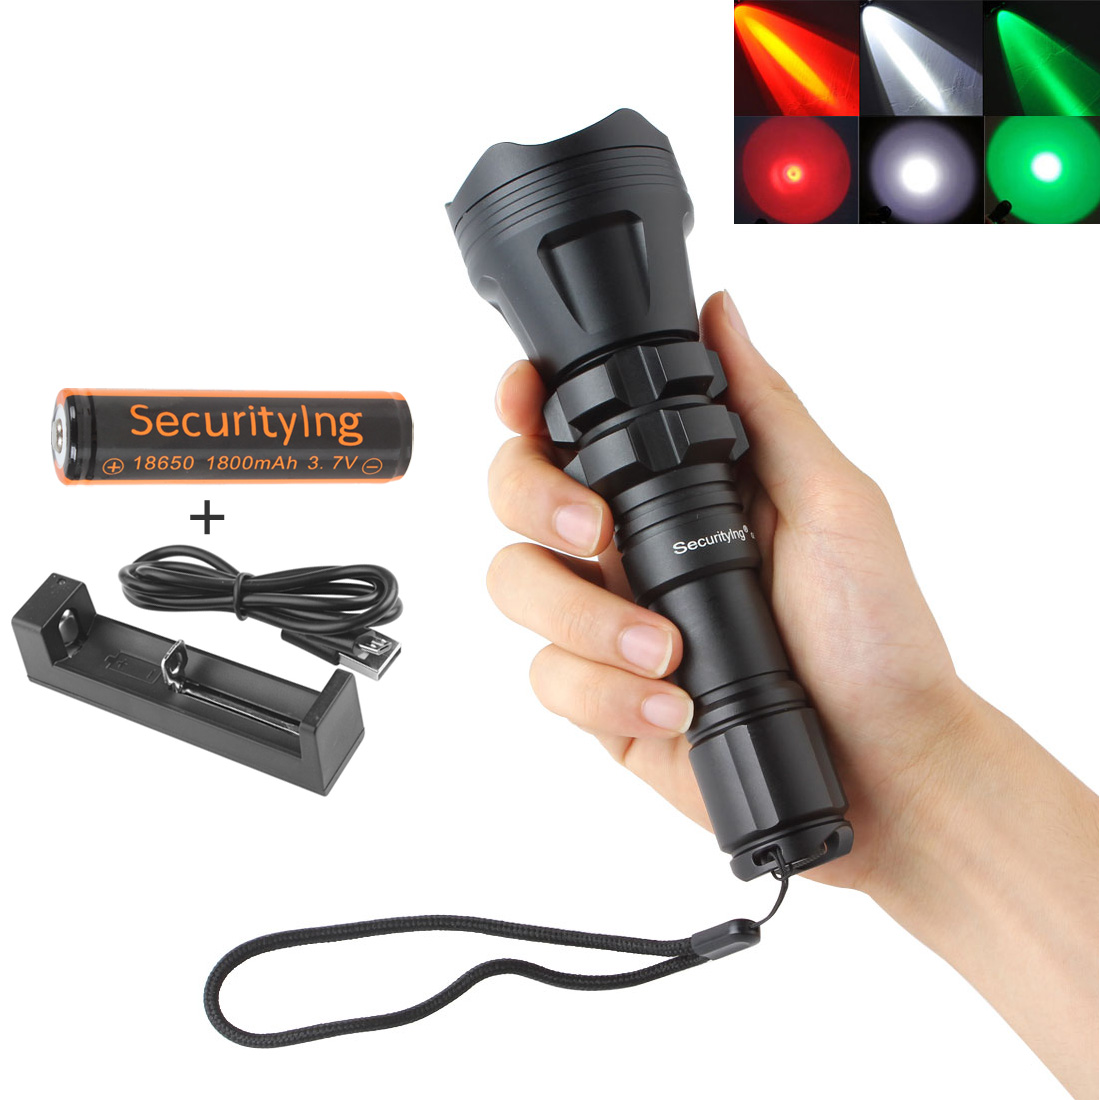 SecurityIng Hunting Flashlight XM-L2 U4 Red / Green / White Led 900LM 5 Modes Zoomable Waterproof 18650 Torch + Remote Pressure fandyfire wf 501b 900lm 5 mode white led flashlight black 1 x 18650